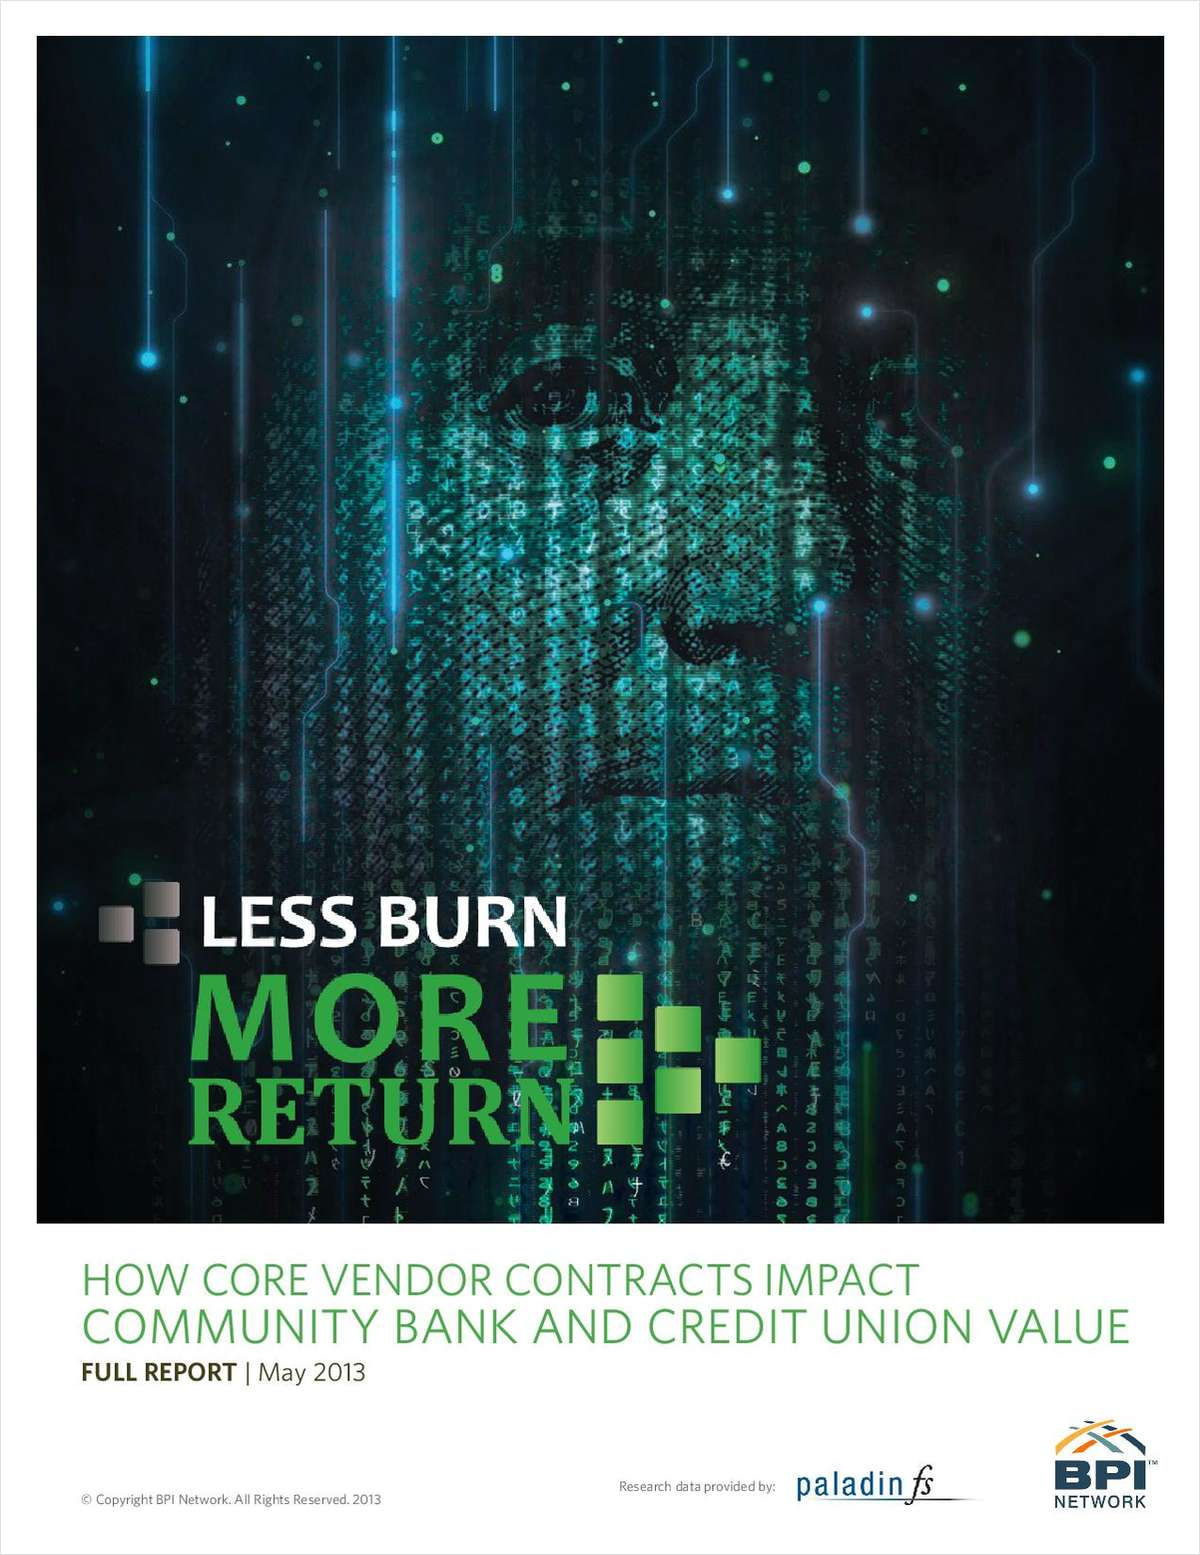 Less Burn. More Return - How Core Vendor Contracts Impact Community Bank and Credit Union Value